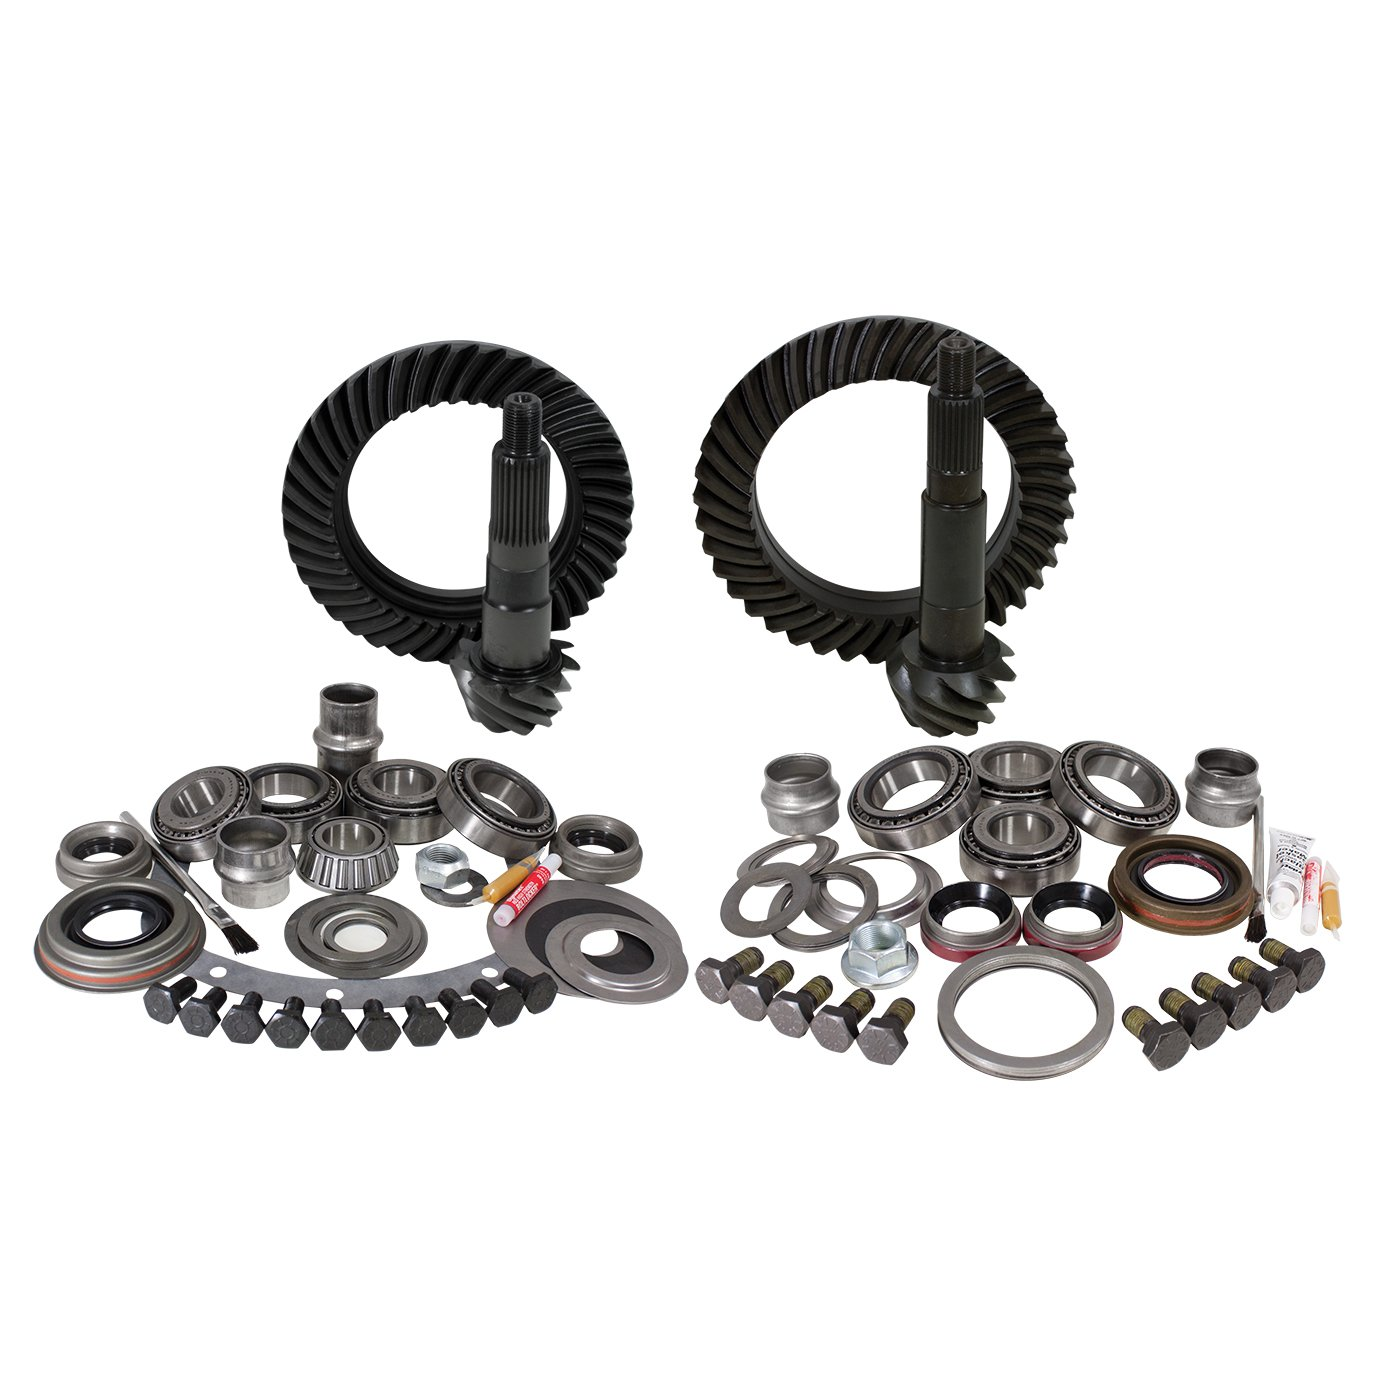 USA Standard Gear ZGK004 Gear & Install Kit Packages